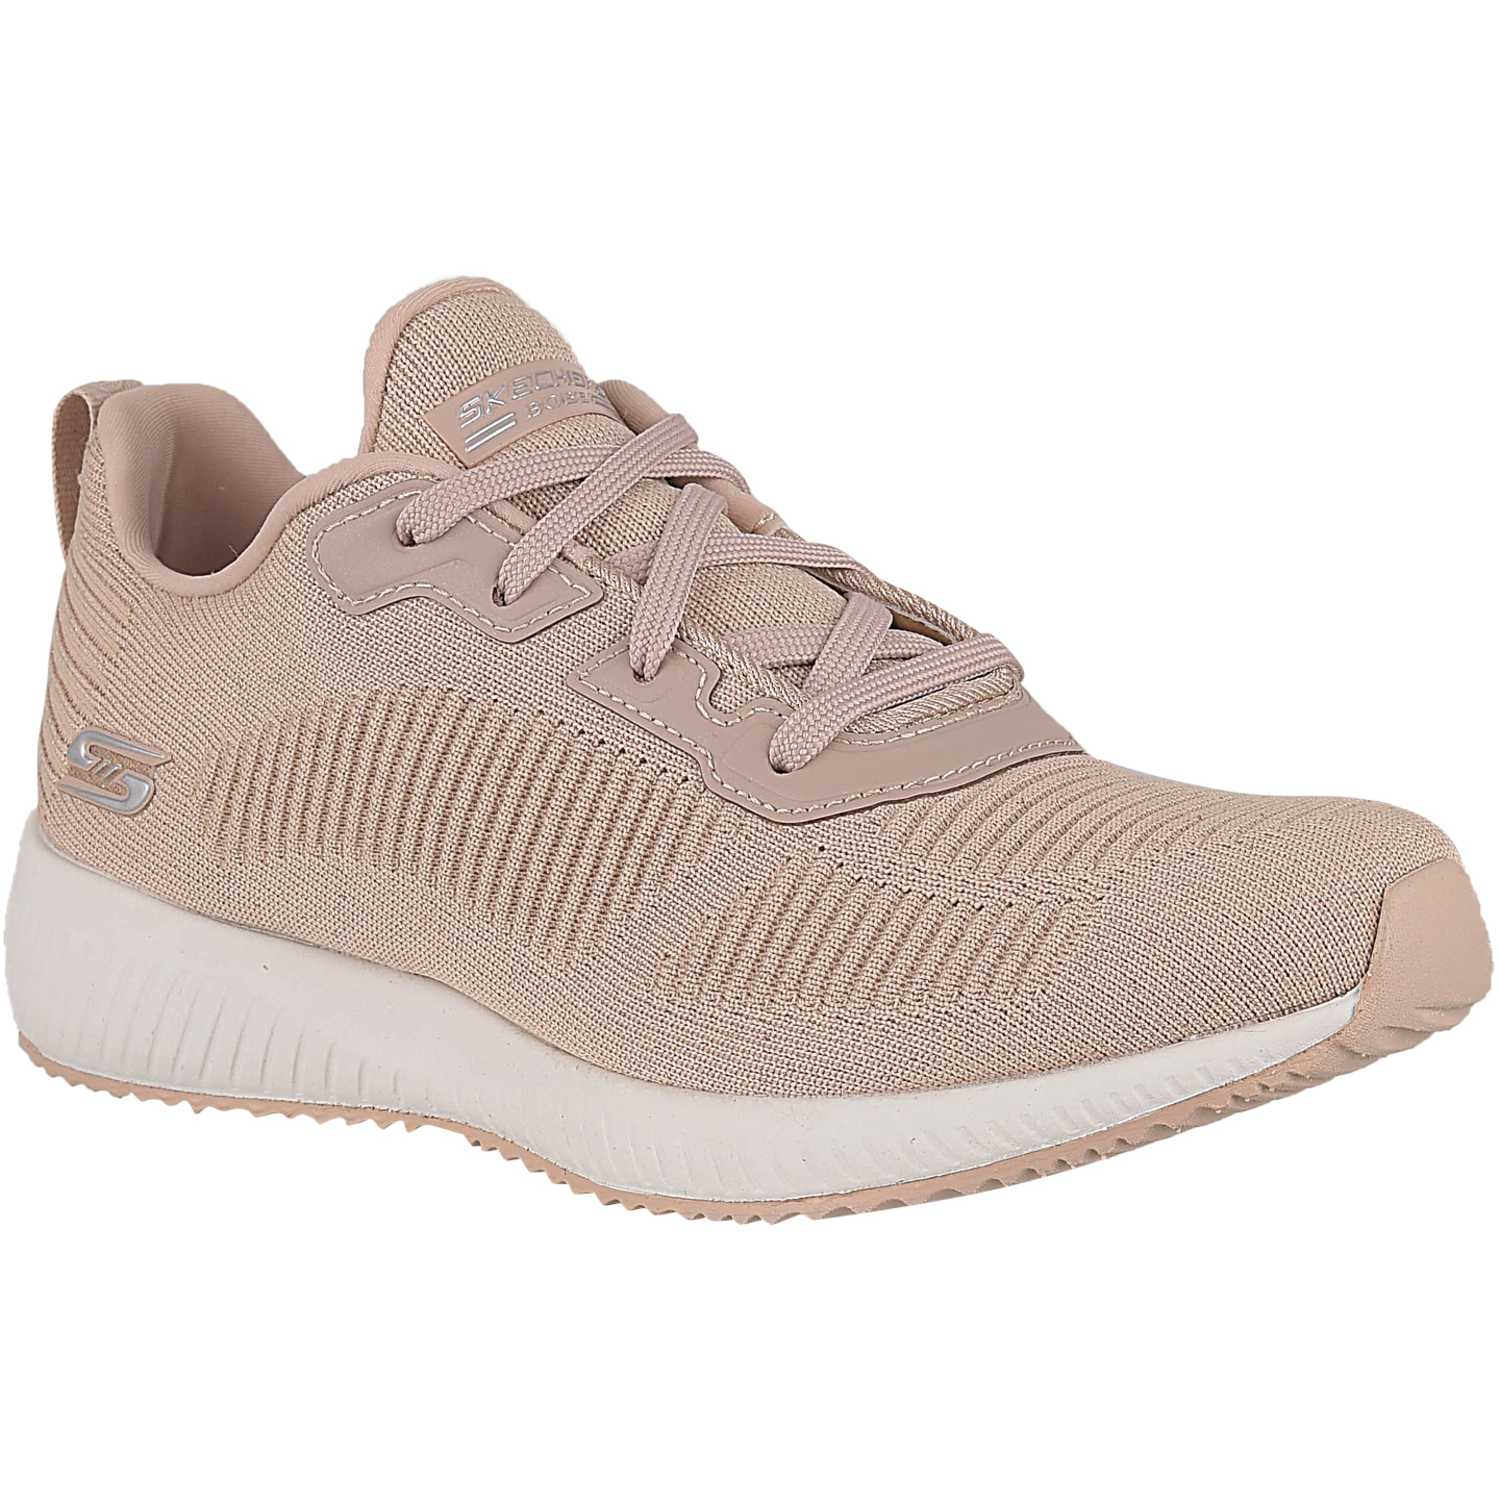 Skechers bobs squad - total glam Melon / blanco Walking